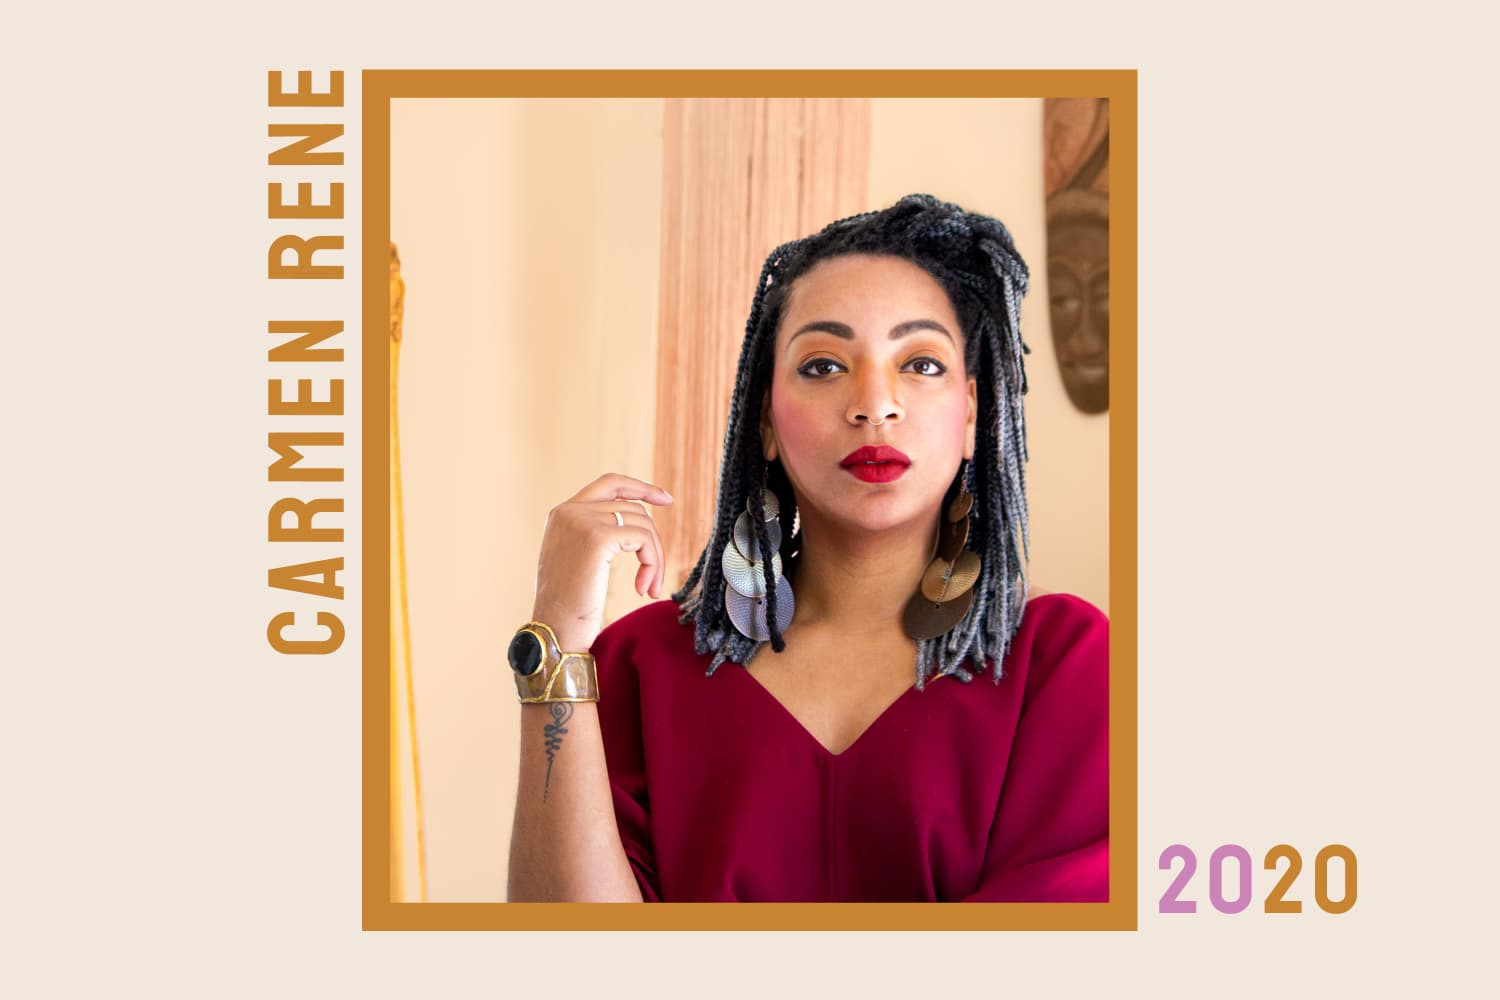 """Class of 2020: How Interior Designer Carmen René Smith is Creating """"Willy Wonka"""" Moments, One Quirky Coffee Table at a Time"""